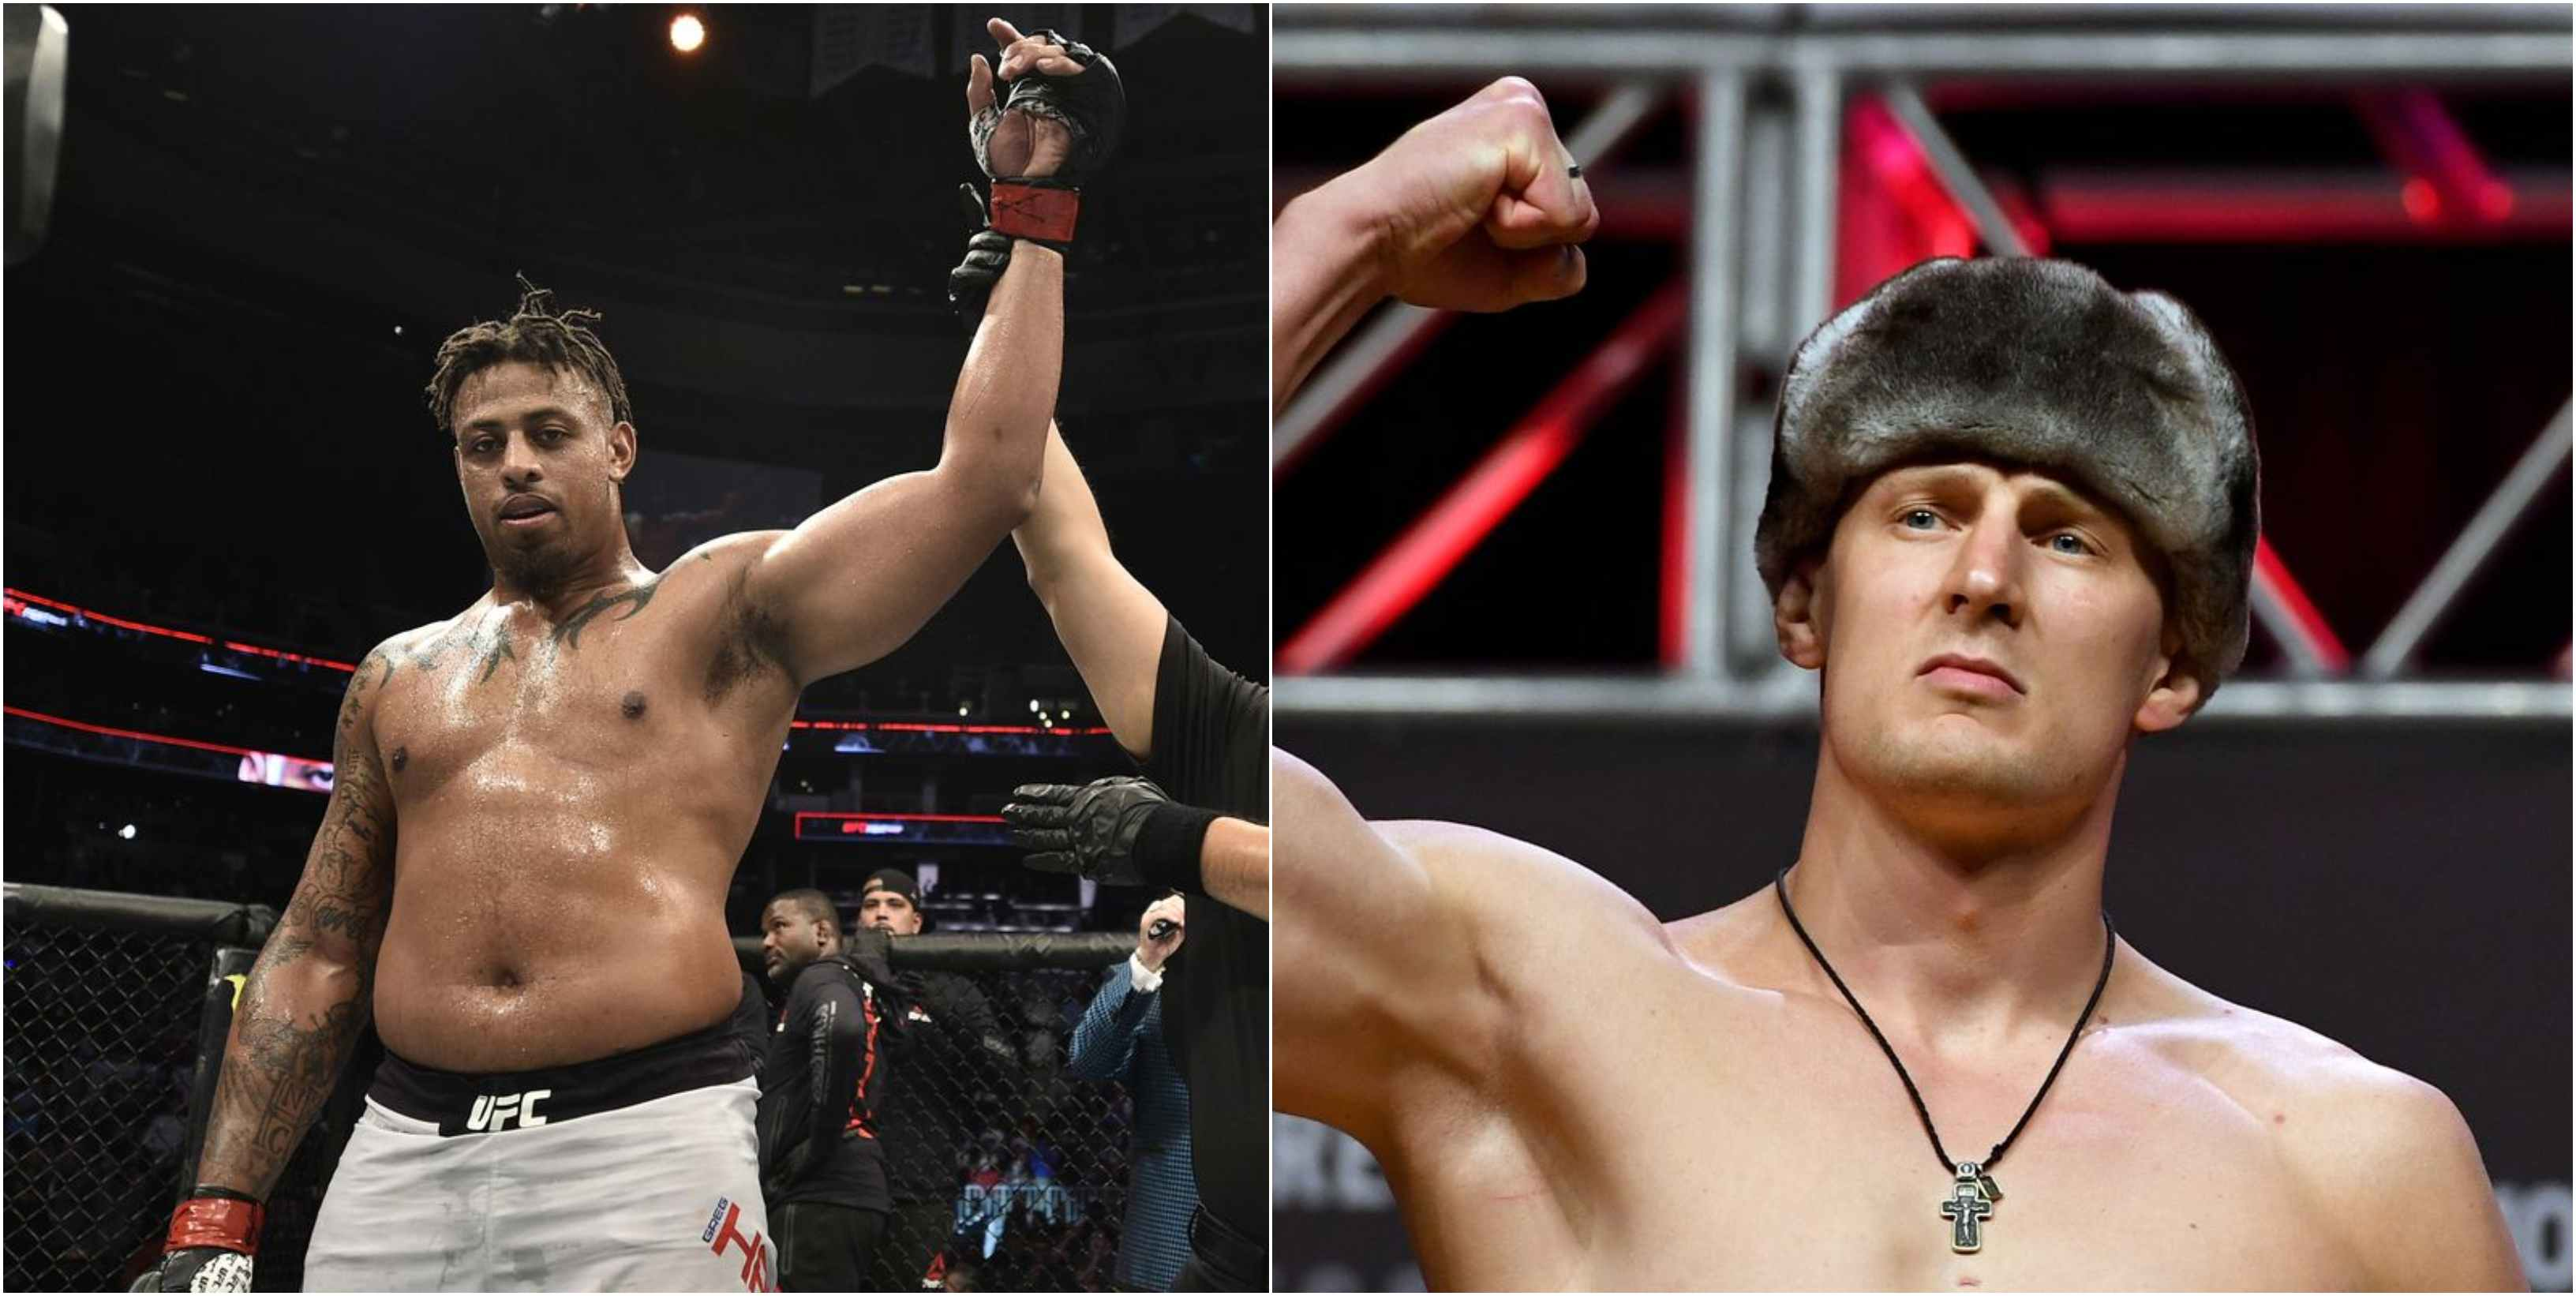 Greg Hardy steps in to fight Alexander Volkov at UFC Moscow on November 9 - Hardy